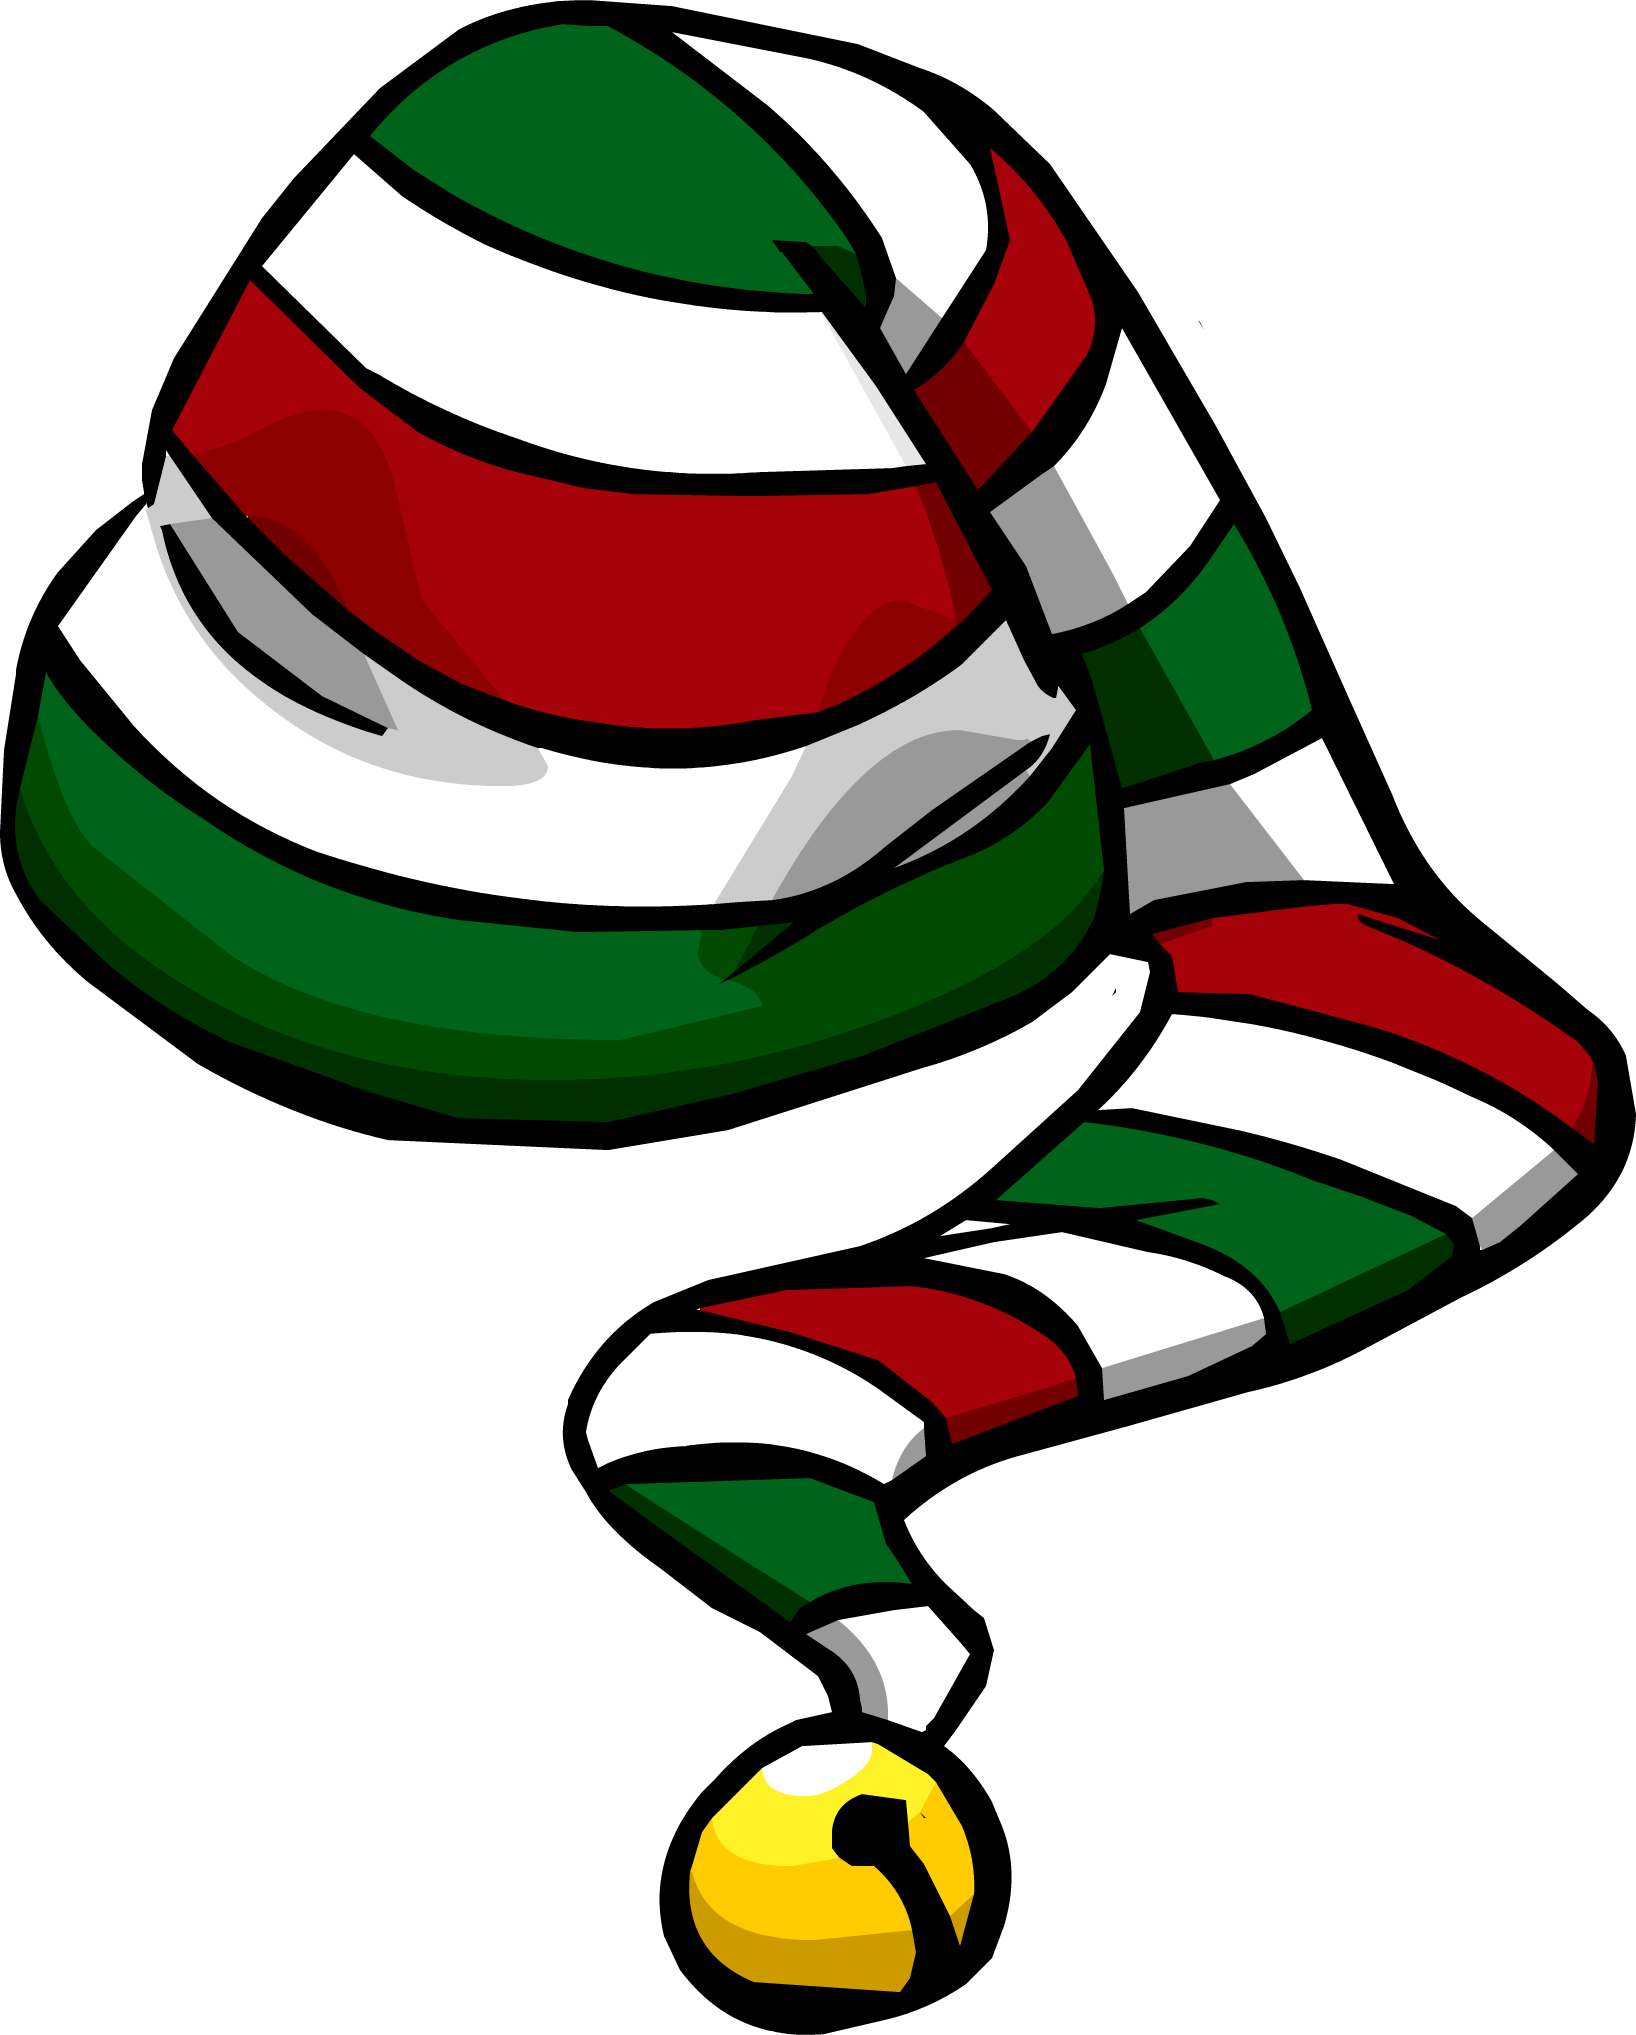 Candy cane transparent png. Image hat club penguin